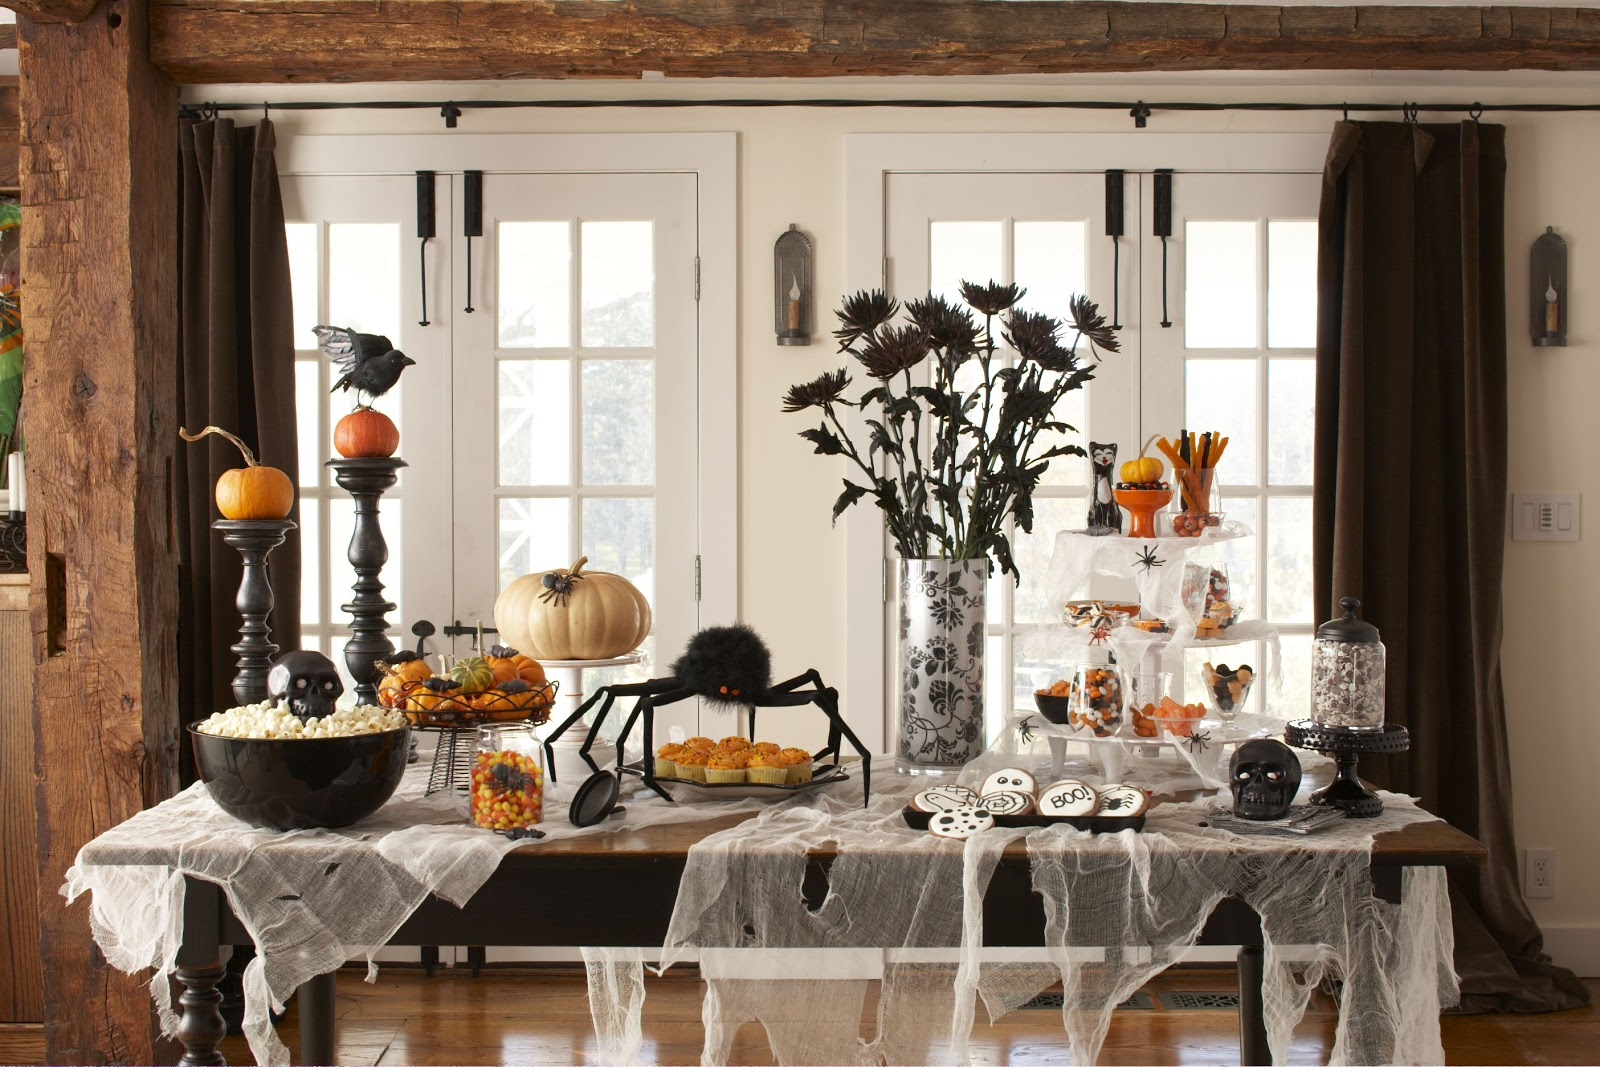 Adult halloween party decor - Adult Halloween Party Decor I Know I Am Halloween Table Display